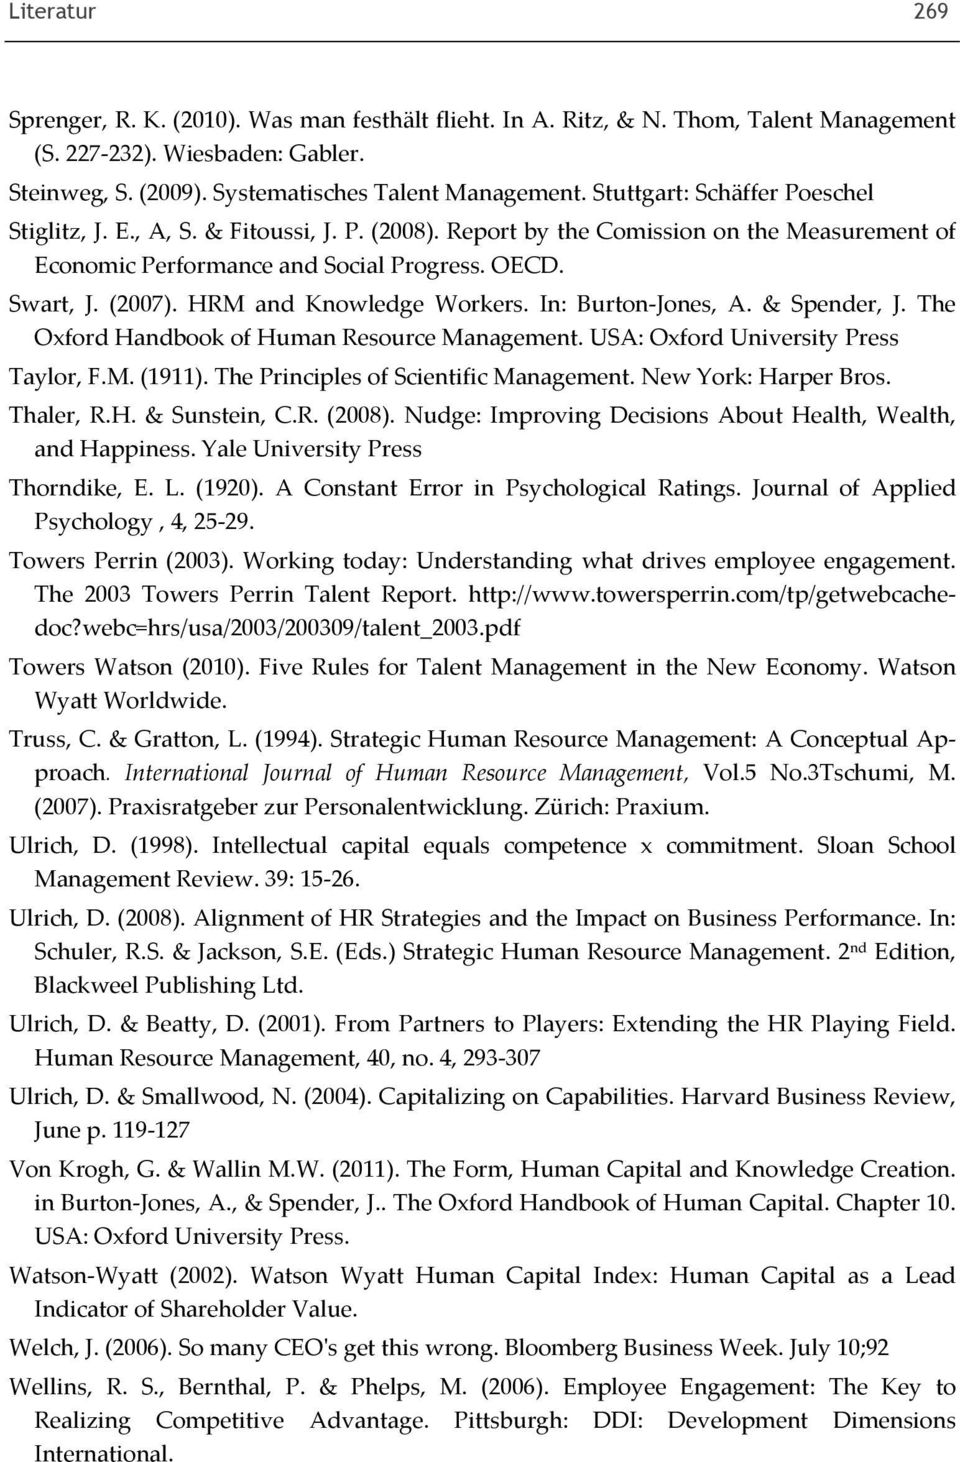 HRM and Knowledge Workers. In: Burton Jones, A. & Spender, J. The Oxford Handbook of Human Resource Management. USA: Oxford University Press Taylor, F.M. (1911).